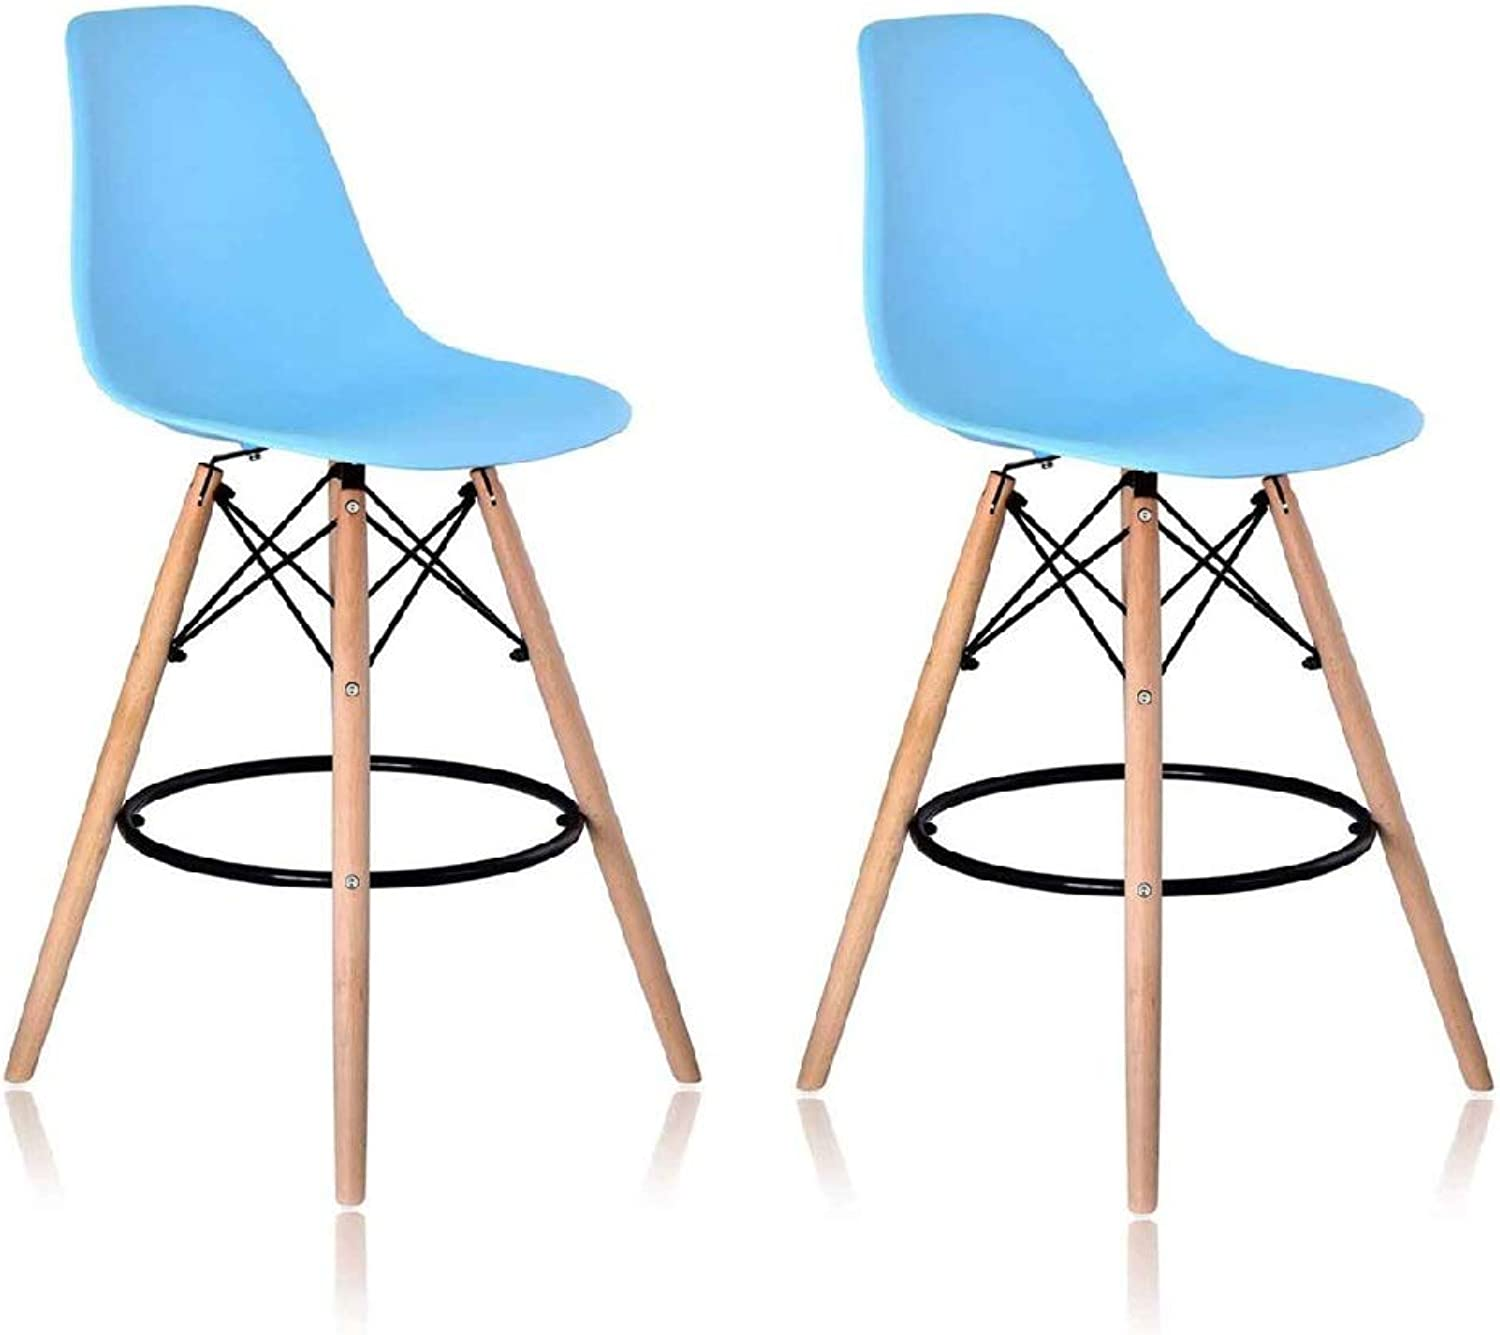 KIMCO Furniture Replica Charles Eames DSW bar Chair Stool (Set of 2) (bluee)